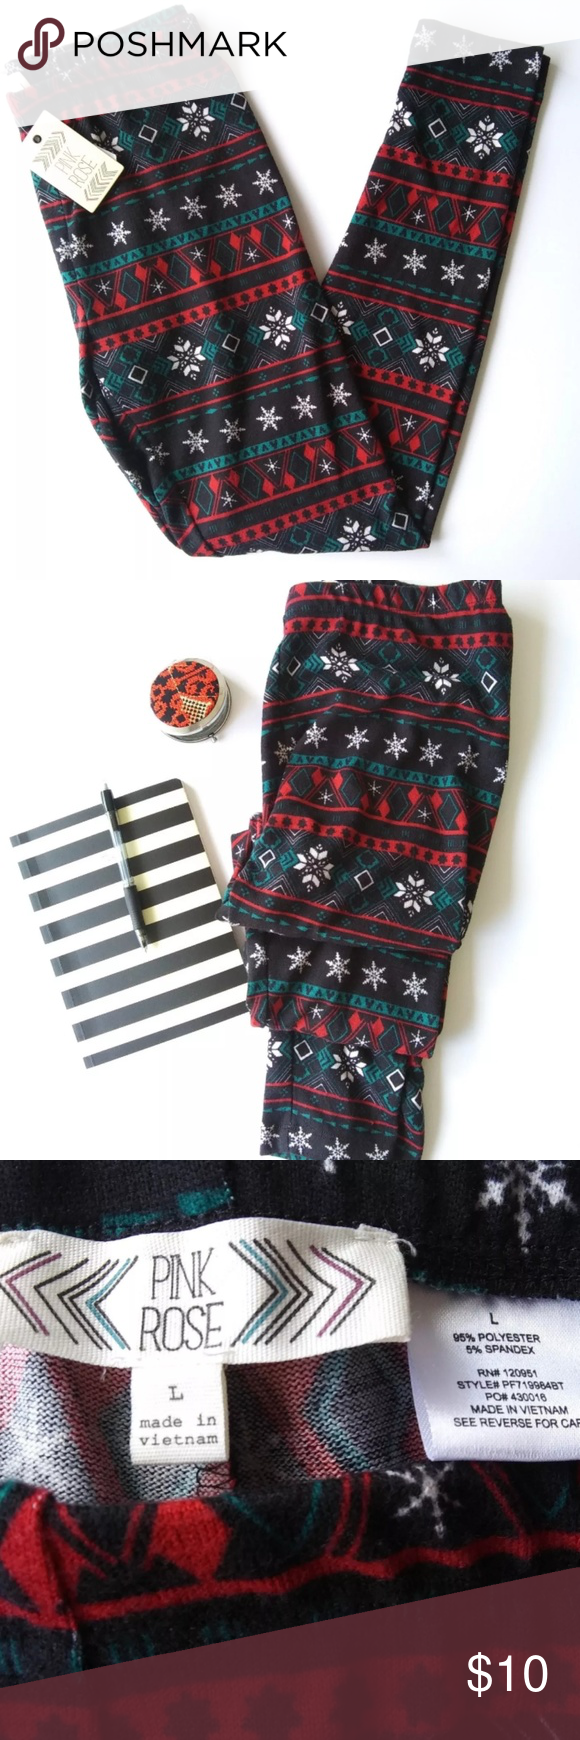 b87ed45736796a NWT Christmas Leggings fair isle snowflake size L These super cute fair  isle snowflake print leggings are so soft! They're made with a polyester  and spandex ...